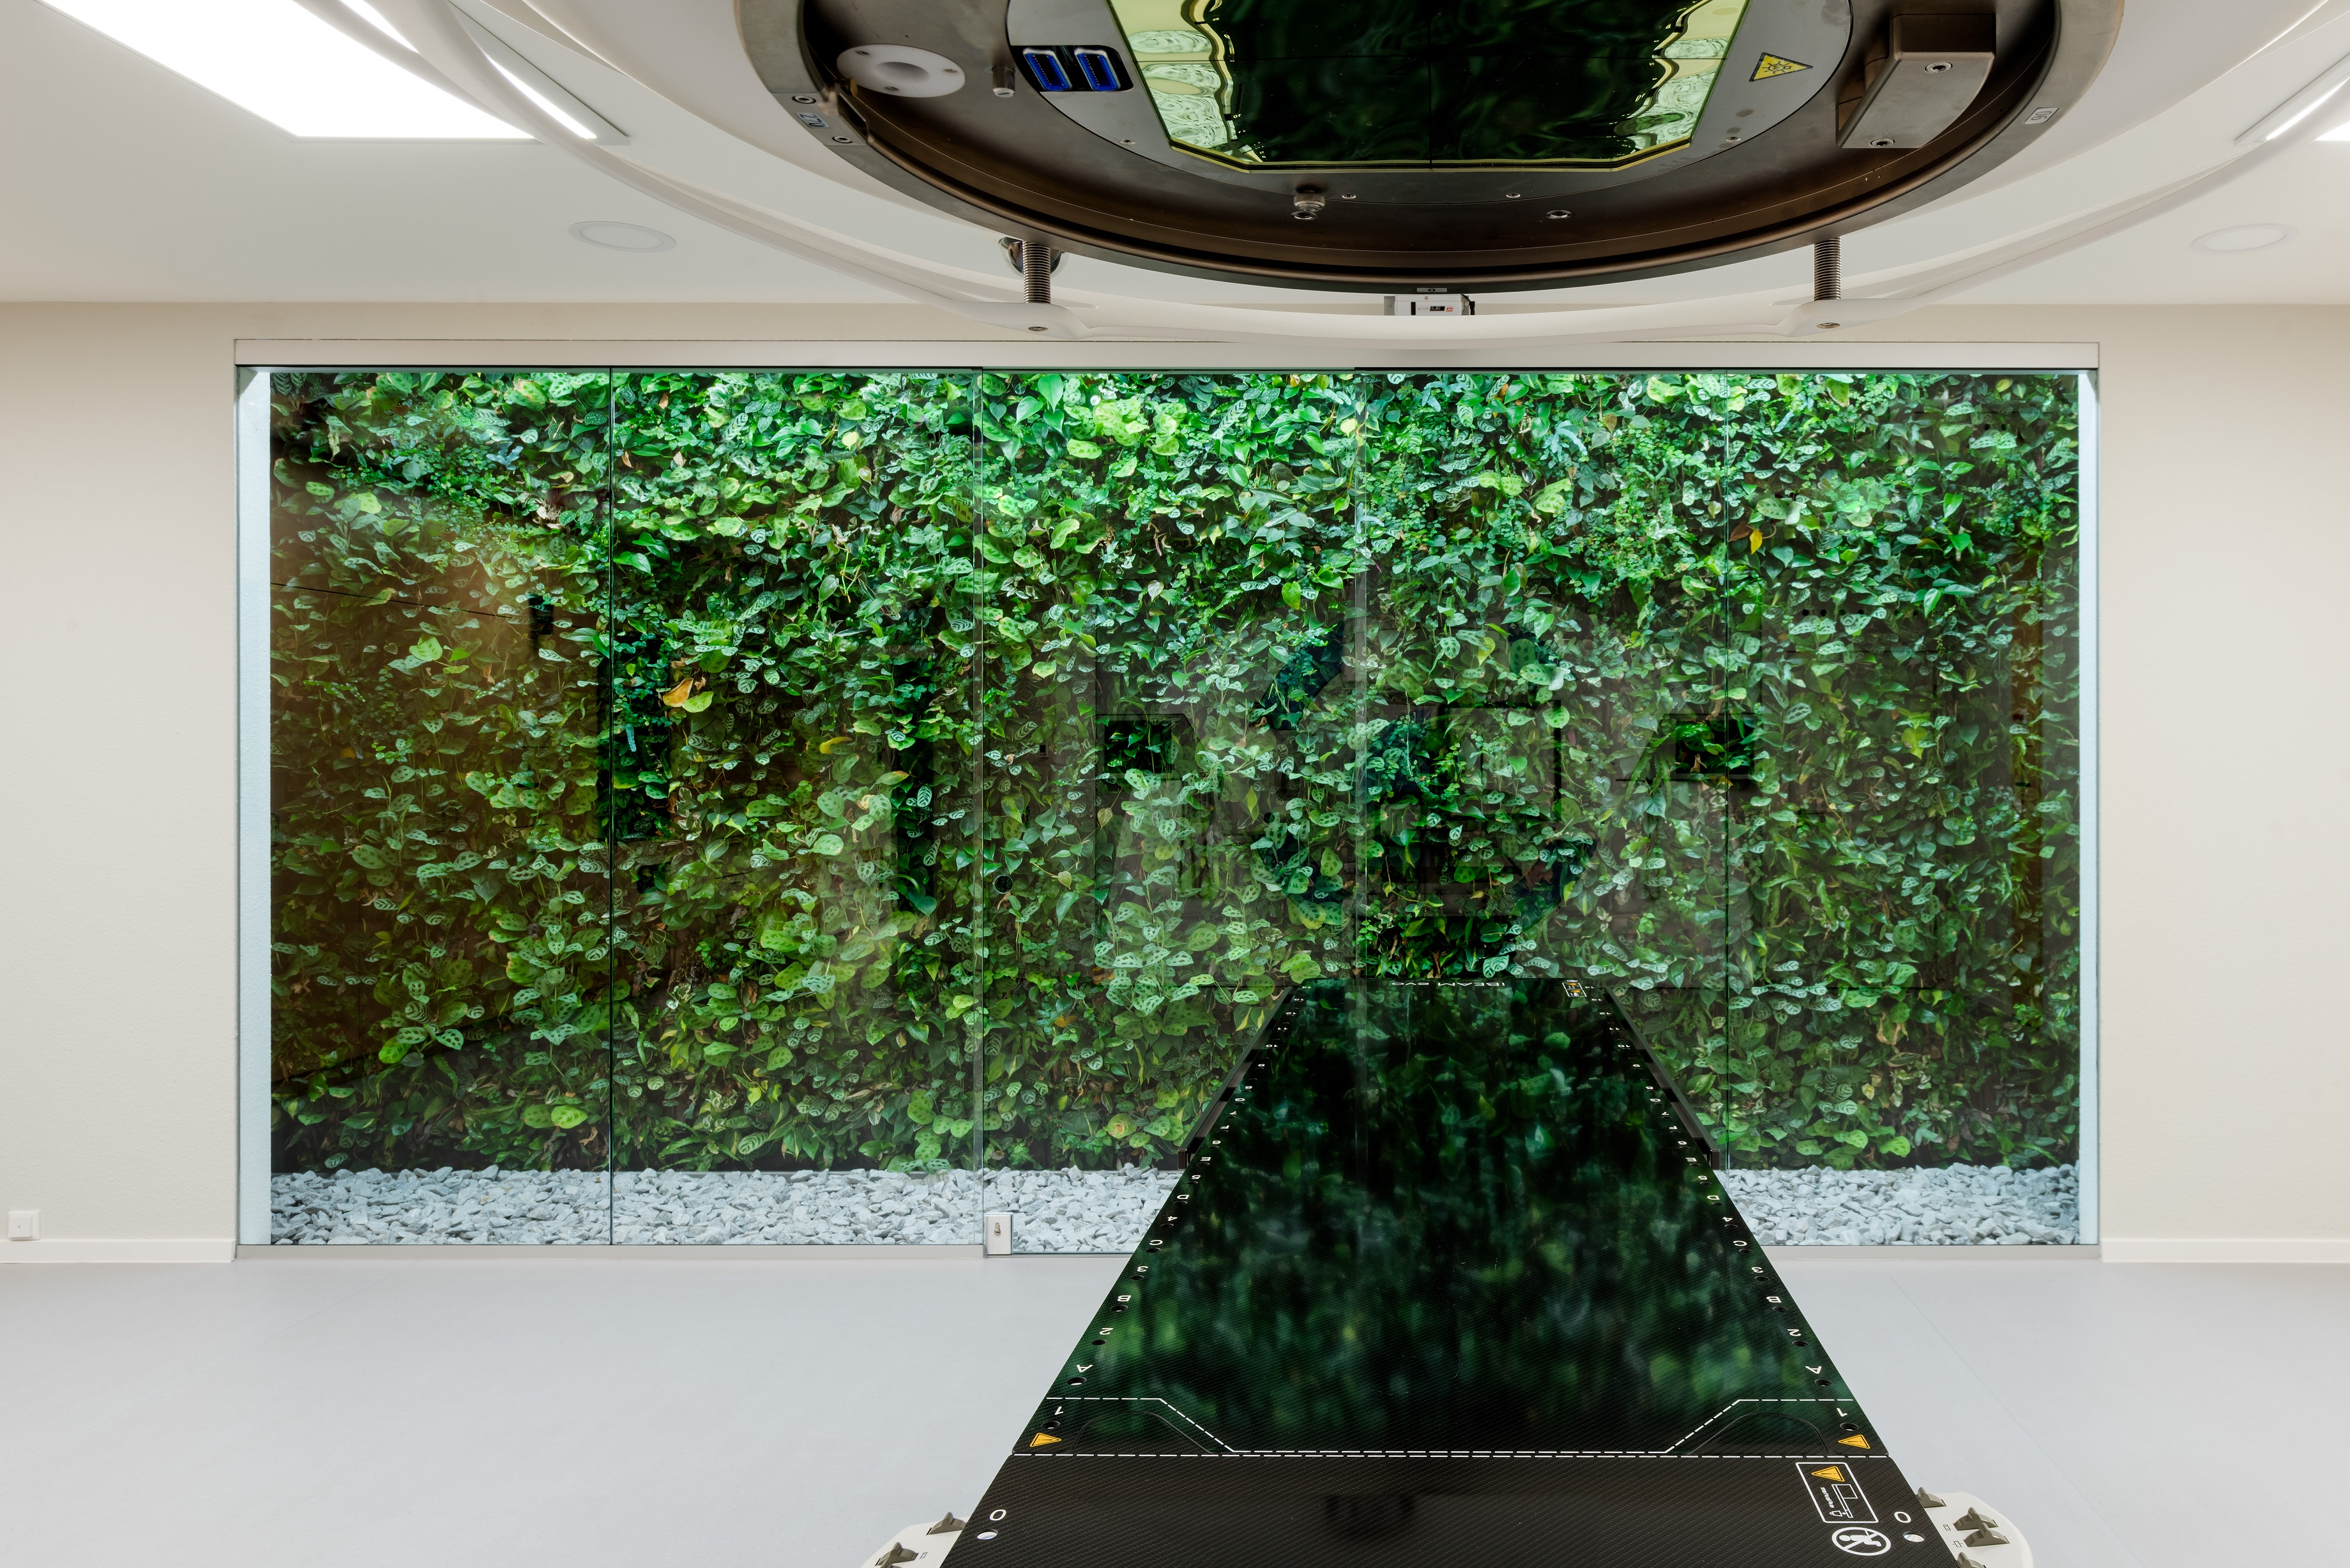 The radiation room, a naturally clinical room, is provided with a living SemperGreenwall.